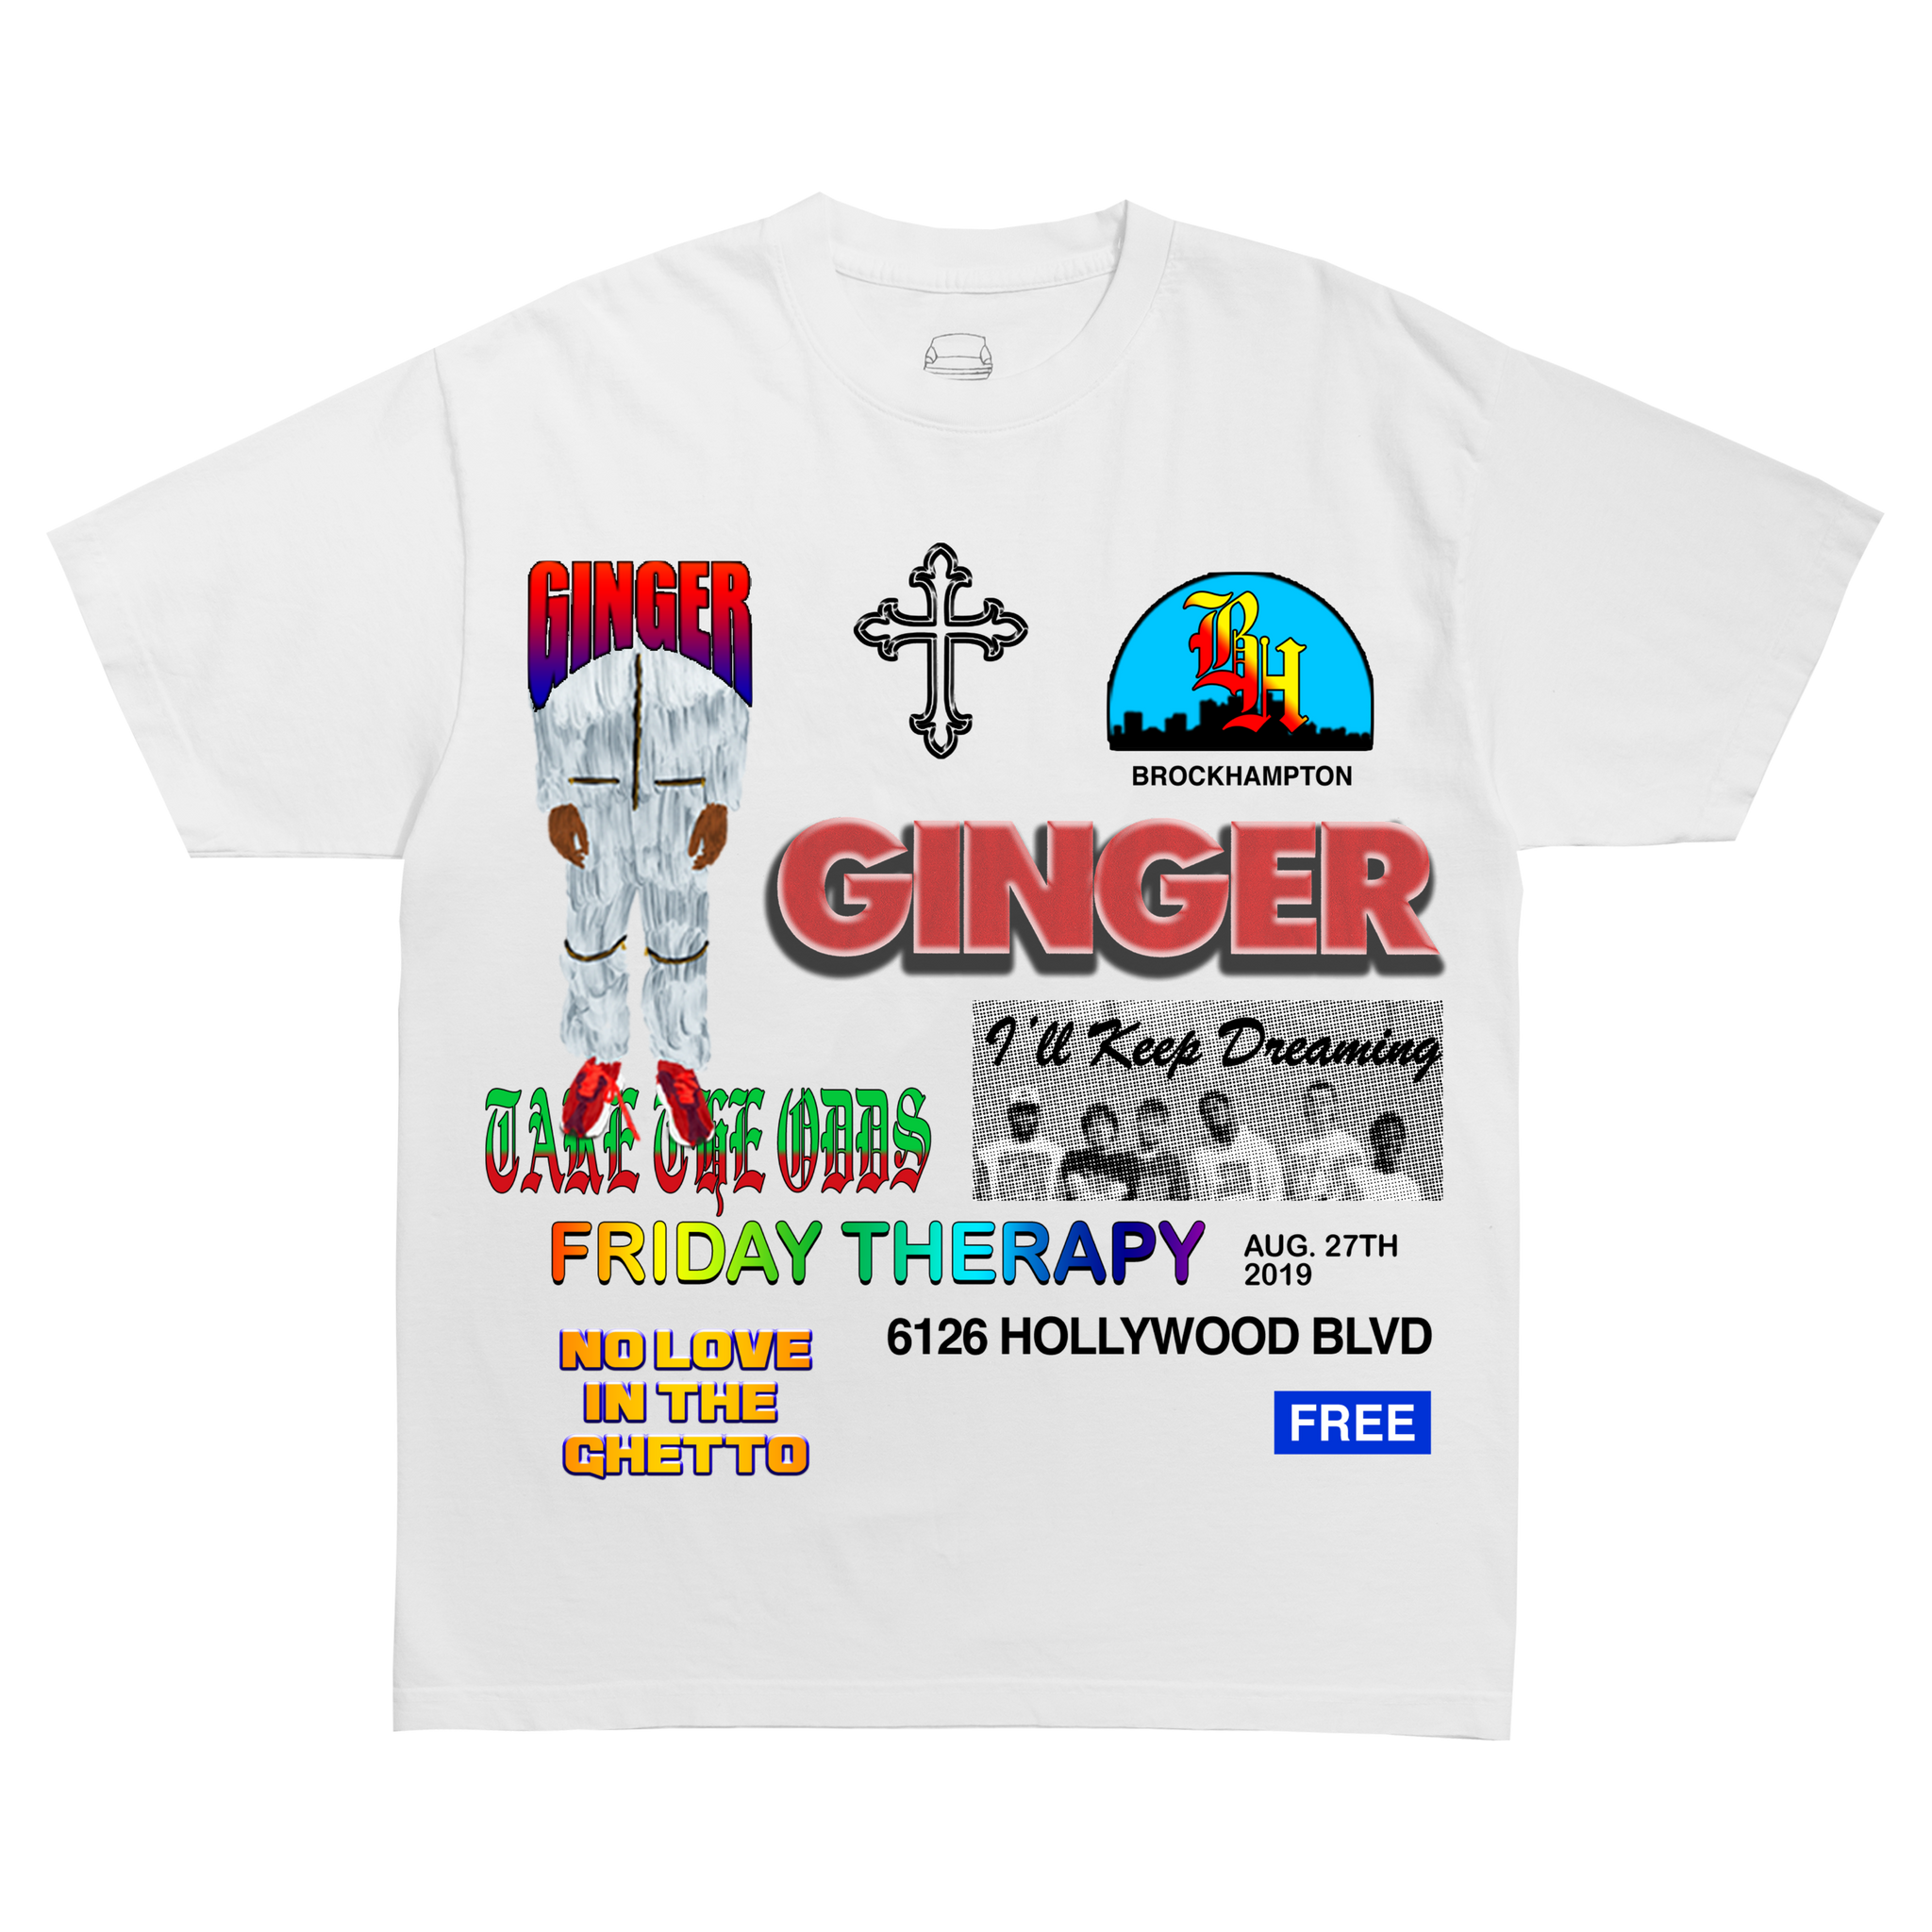 FRIDAY THERAPY T-SHIRT + DIGITAL ALBUM